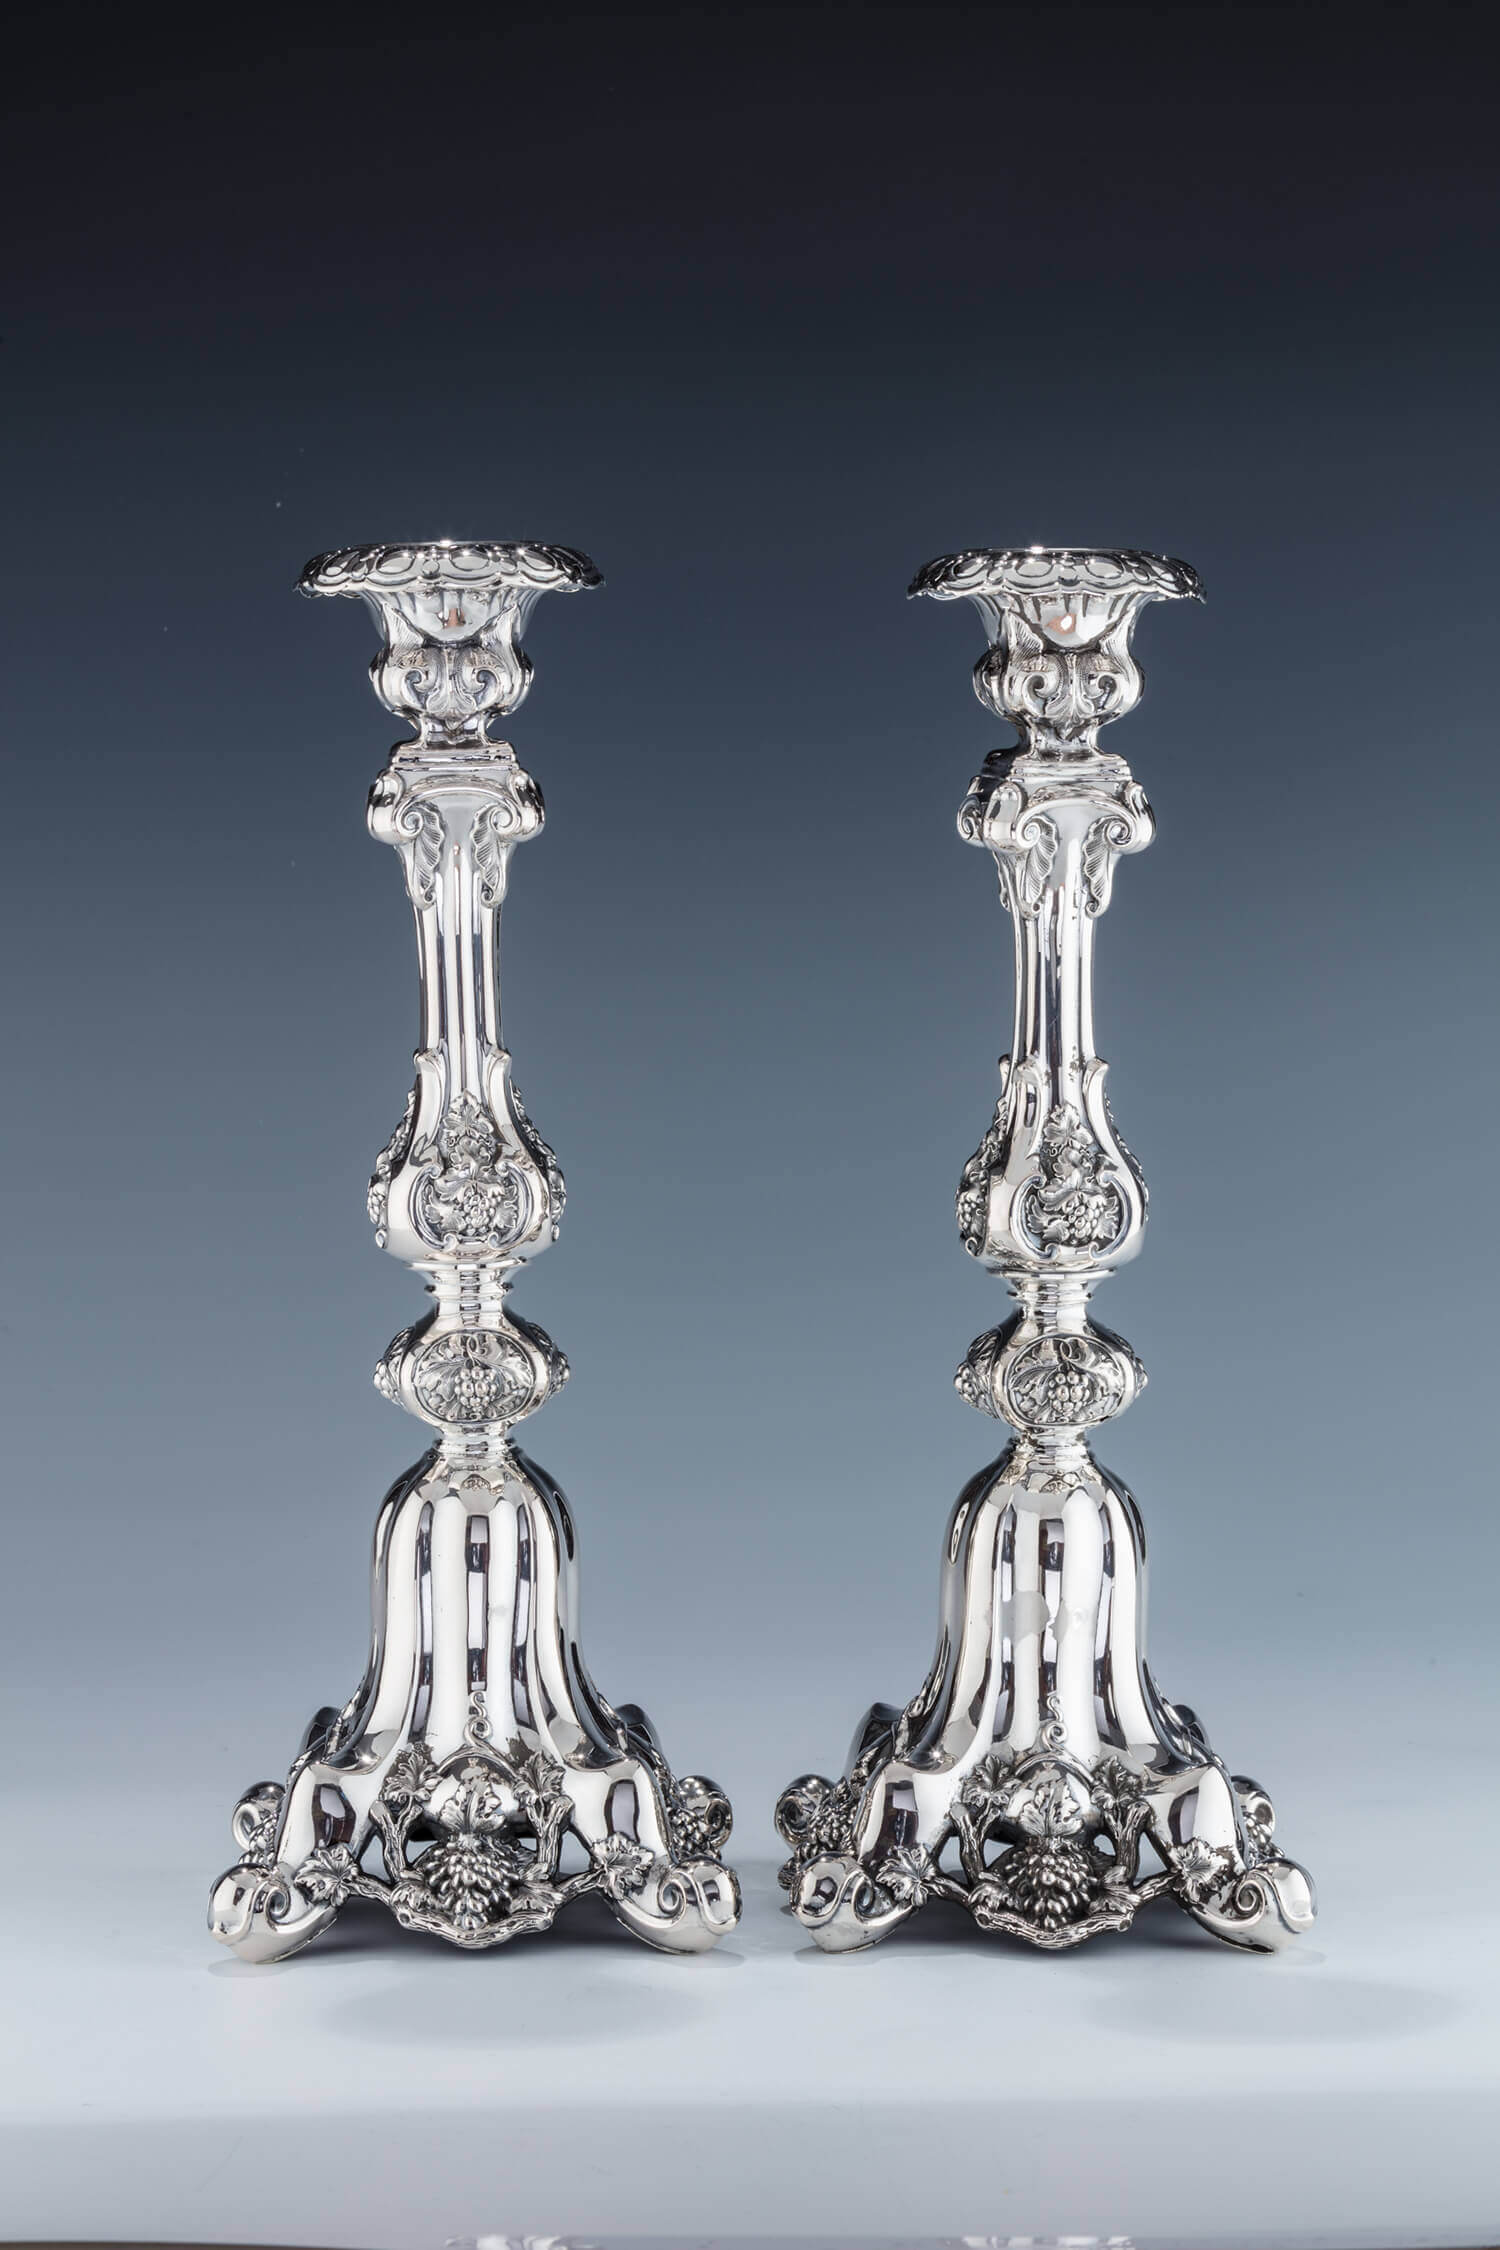 034. A PAIR OF LARGE SILVER CANDLESTICKS